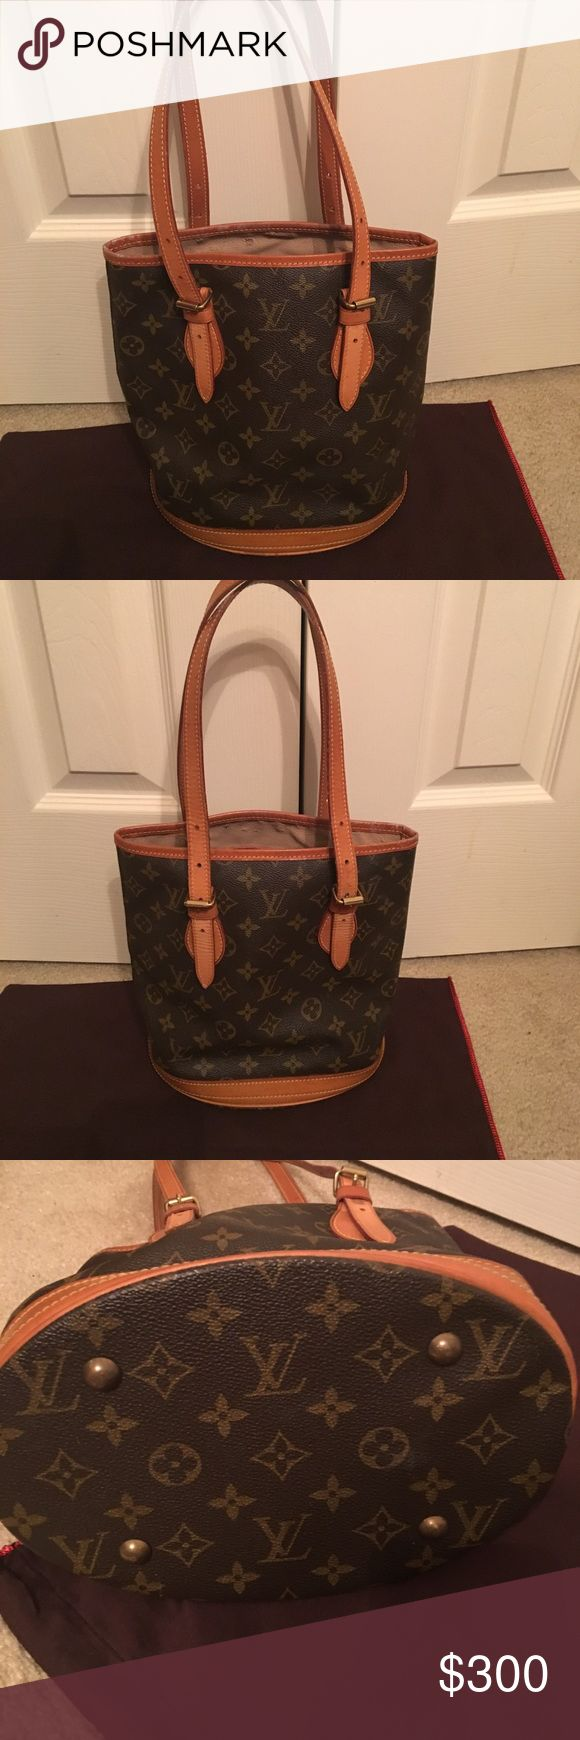 Authentic LV small bucket bag ❤️❤️ Authentic LV bucket bag! In good used condition. Inside is a little sticky like LVs get. But has a lot of life left ❤️😘💋💕😊🐬🦋🌹TV will be higher Louis Vuitton Bags Shoulder Bags